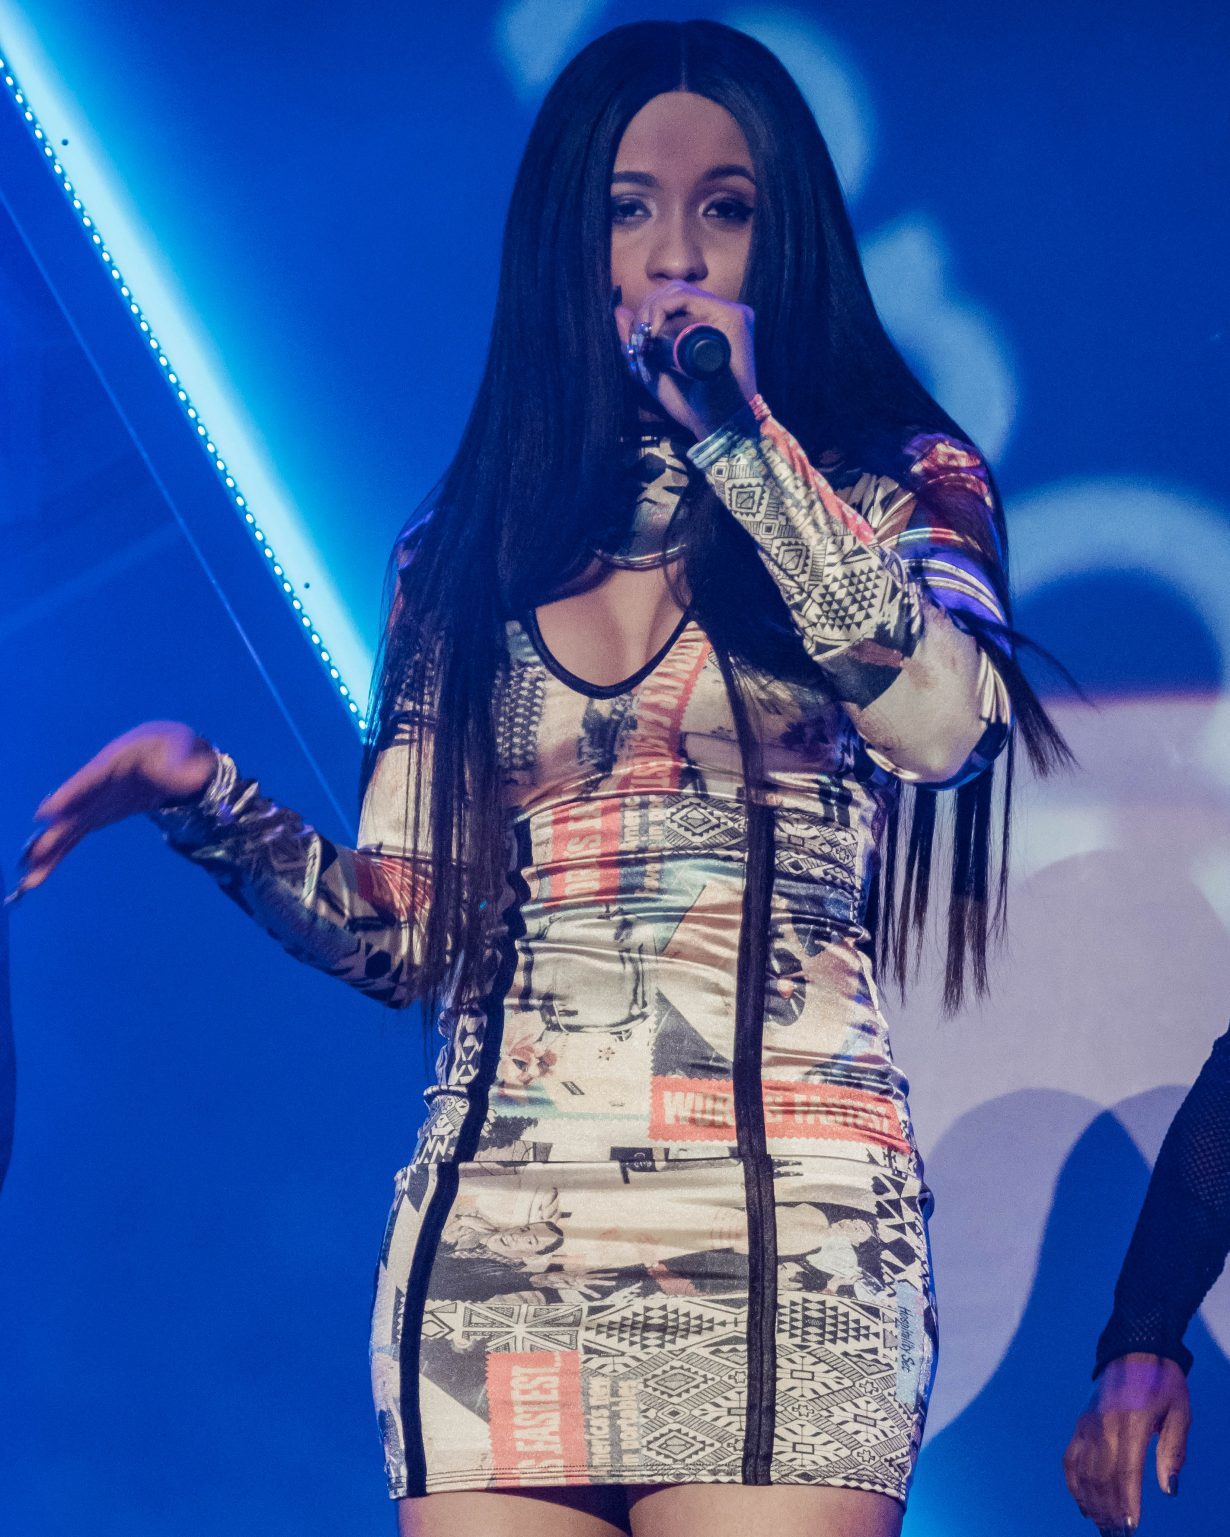 Cardi B. RapCaviar Aragon Ballroom 2017 Chicago Il. Photo by Kevin Baker 2 1230x1537 RapCaviar Sets Chicago On Fire with Lil Uzi Vert, Playboi Carti, Cardi B, DJ Drama and More